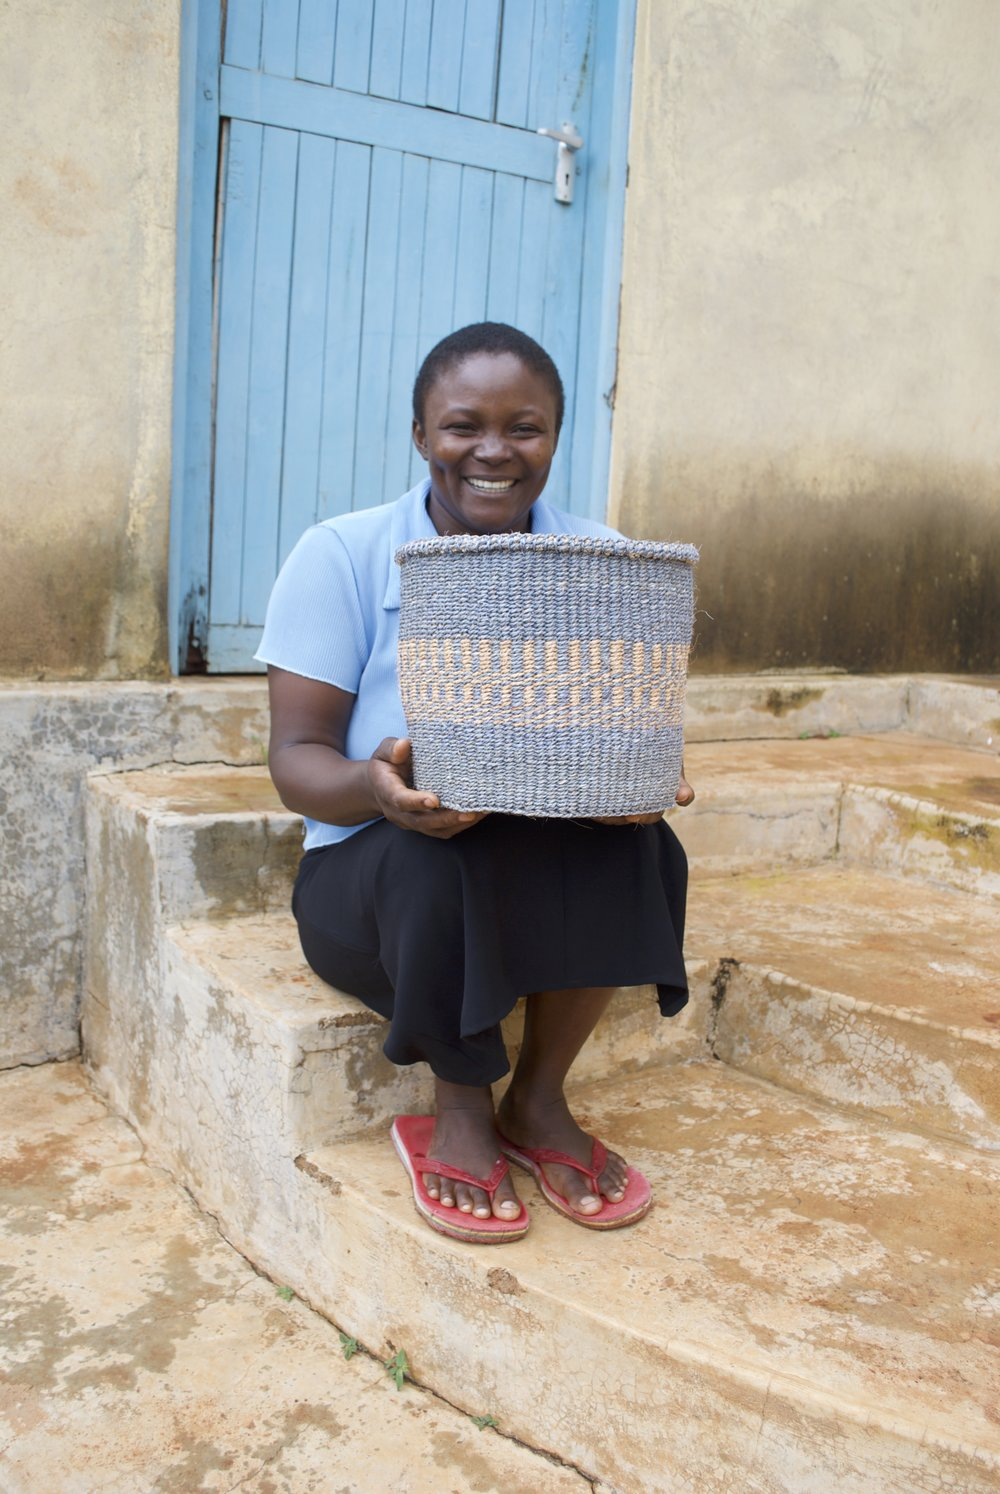 """"""" I learnt how to weave baskets from my mother. I joined Rukanga Basket Weavers because the leaders work for the betterment of their members. The group is hardworking and united and many of my baskets have been sold through my association with them. The profits I get I use to educate my children and buy food for my family.""""  Eunice - Rukanga"""